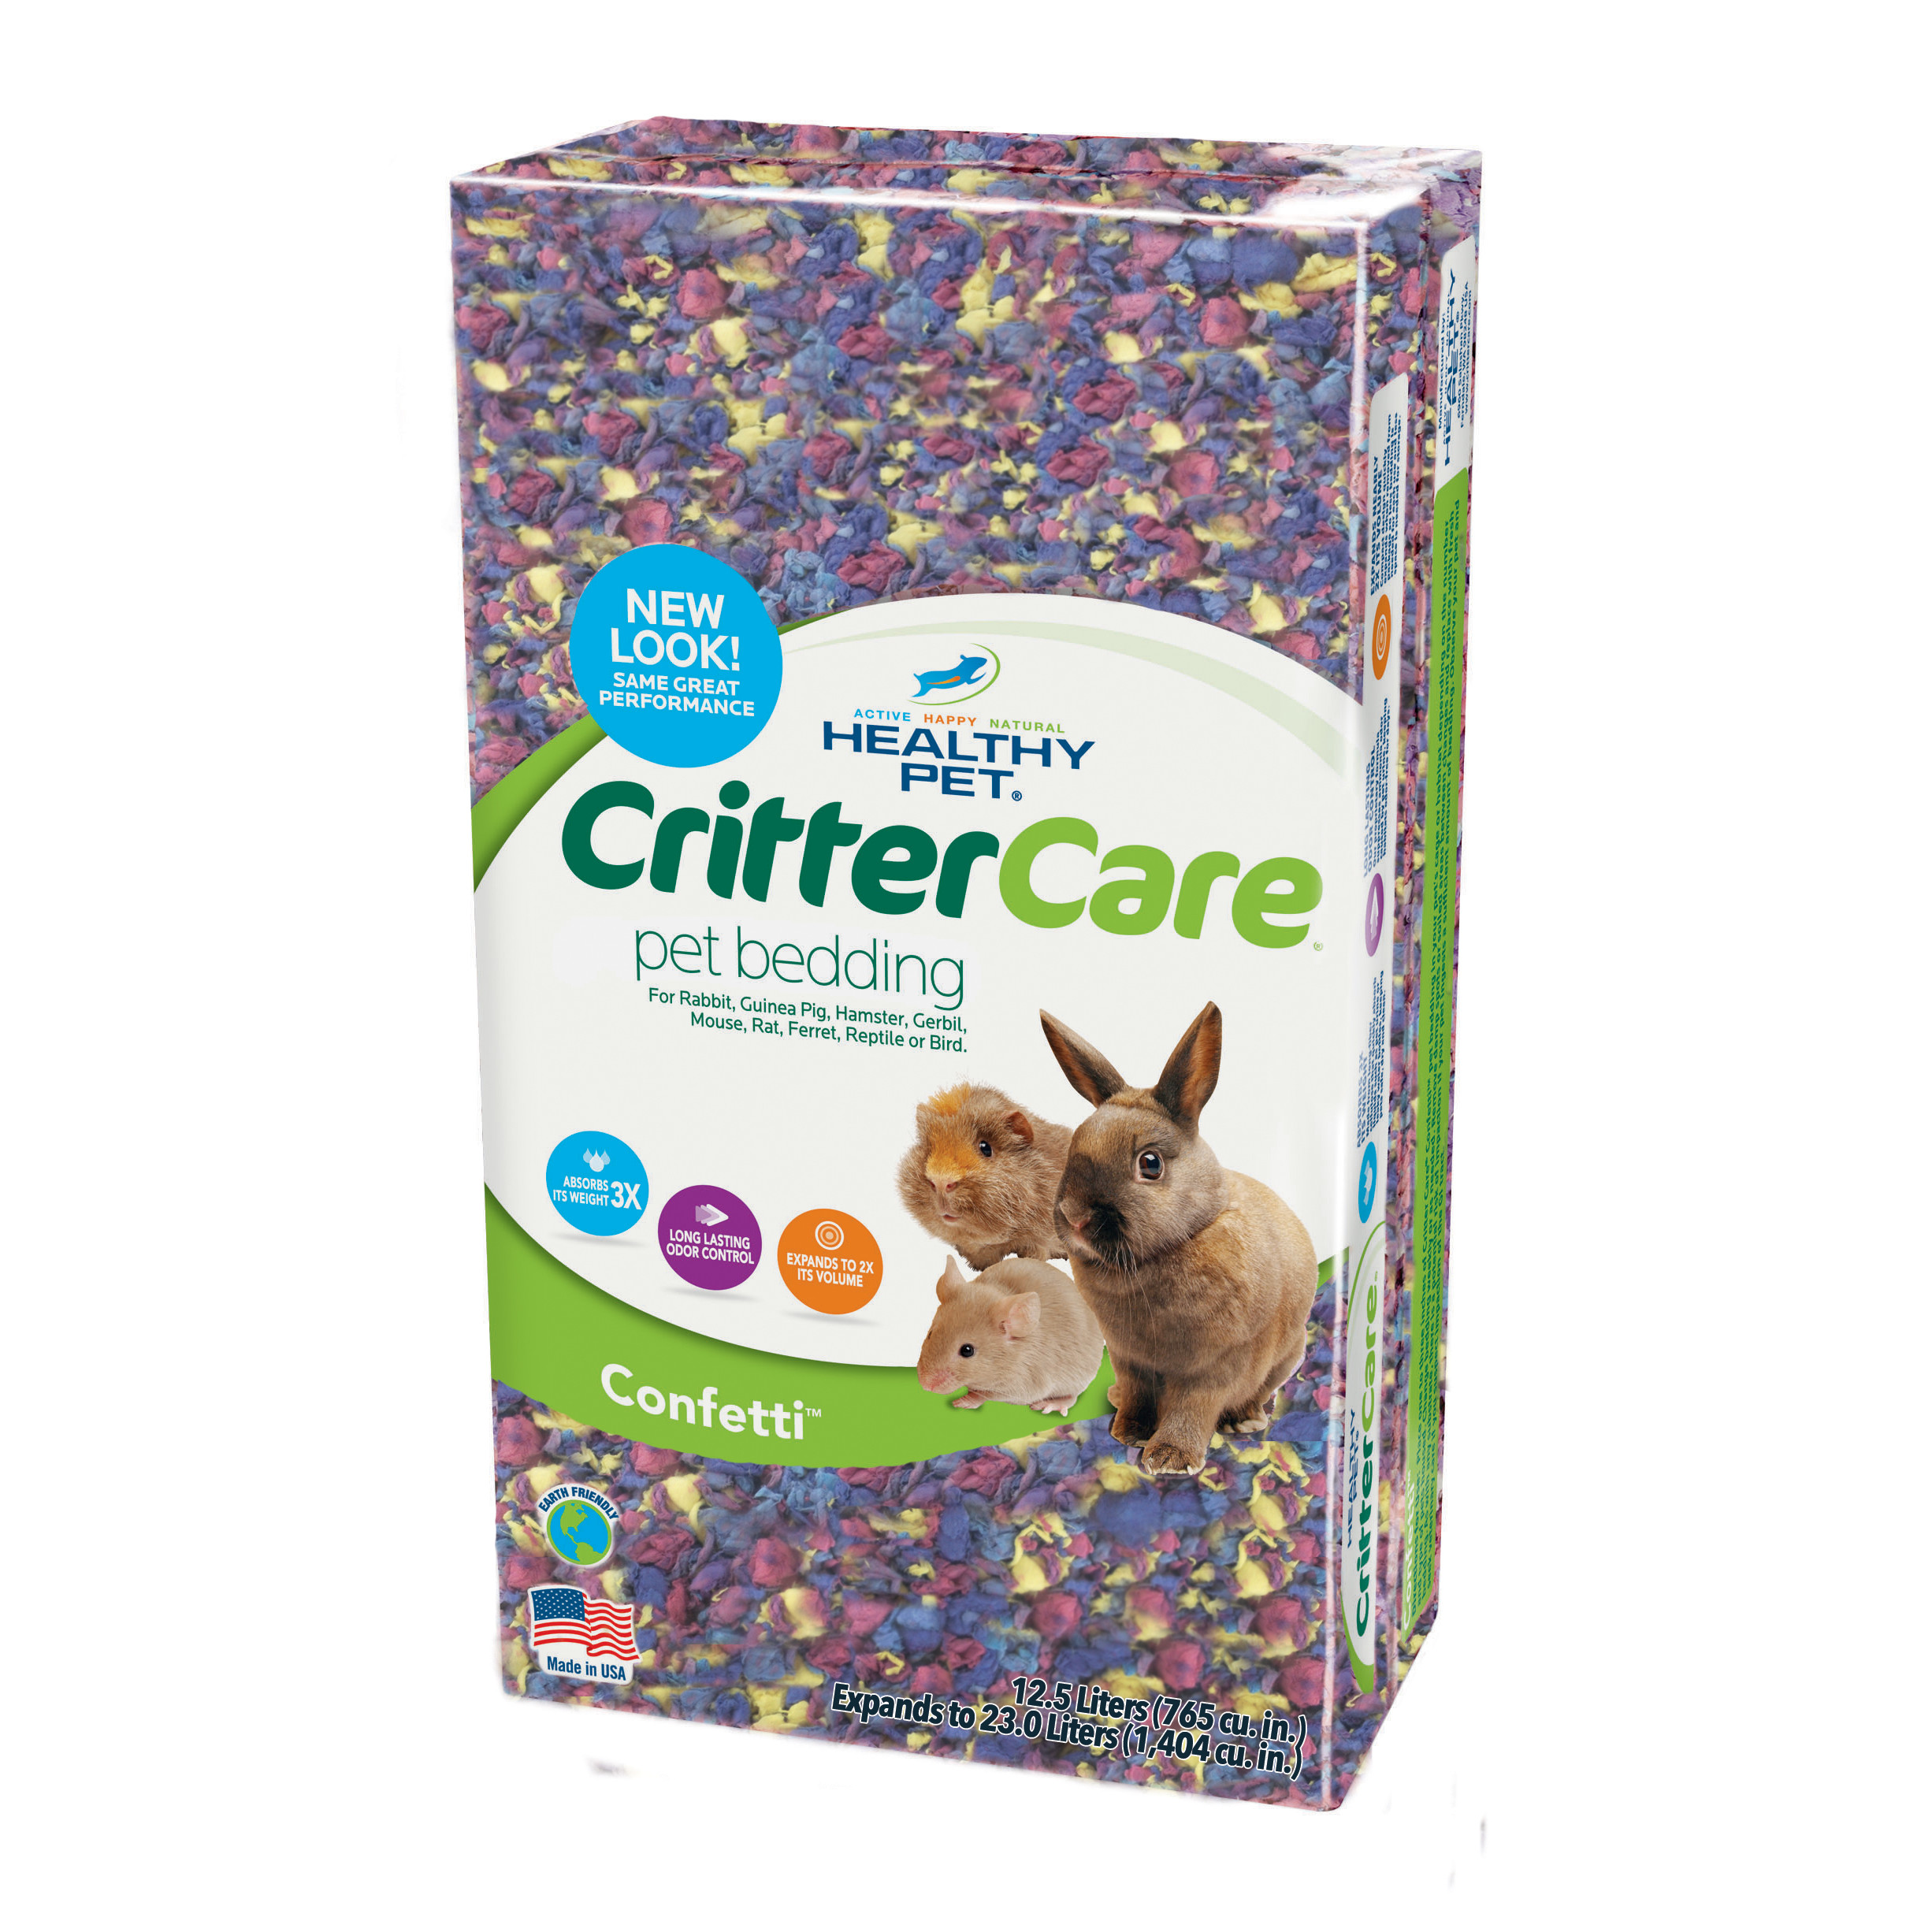 Healthy Pet CritterCare Confetti Bedding, 23L